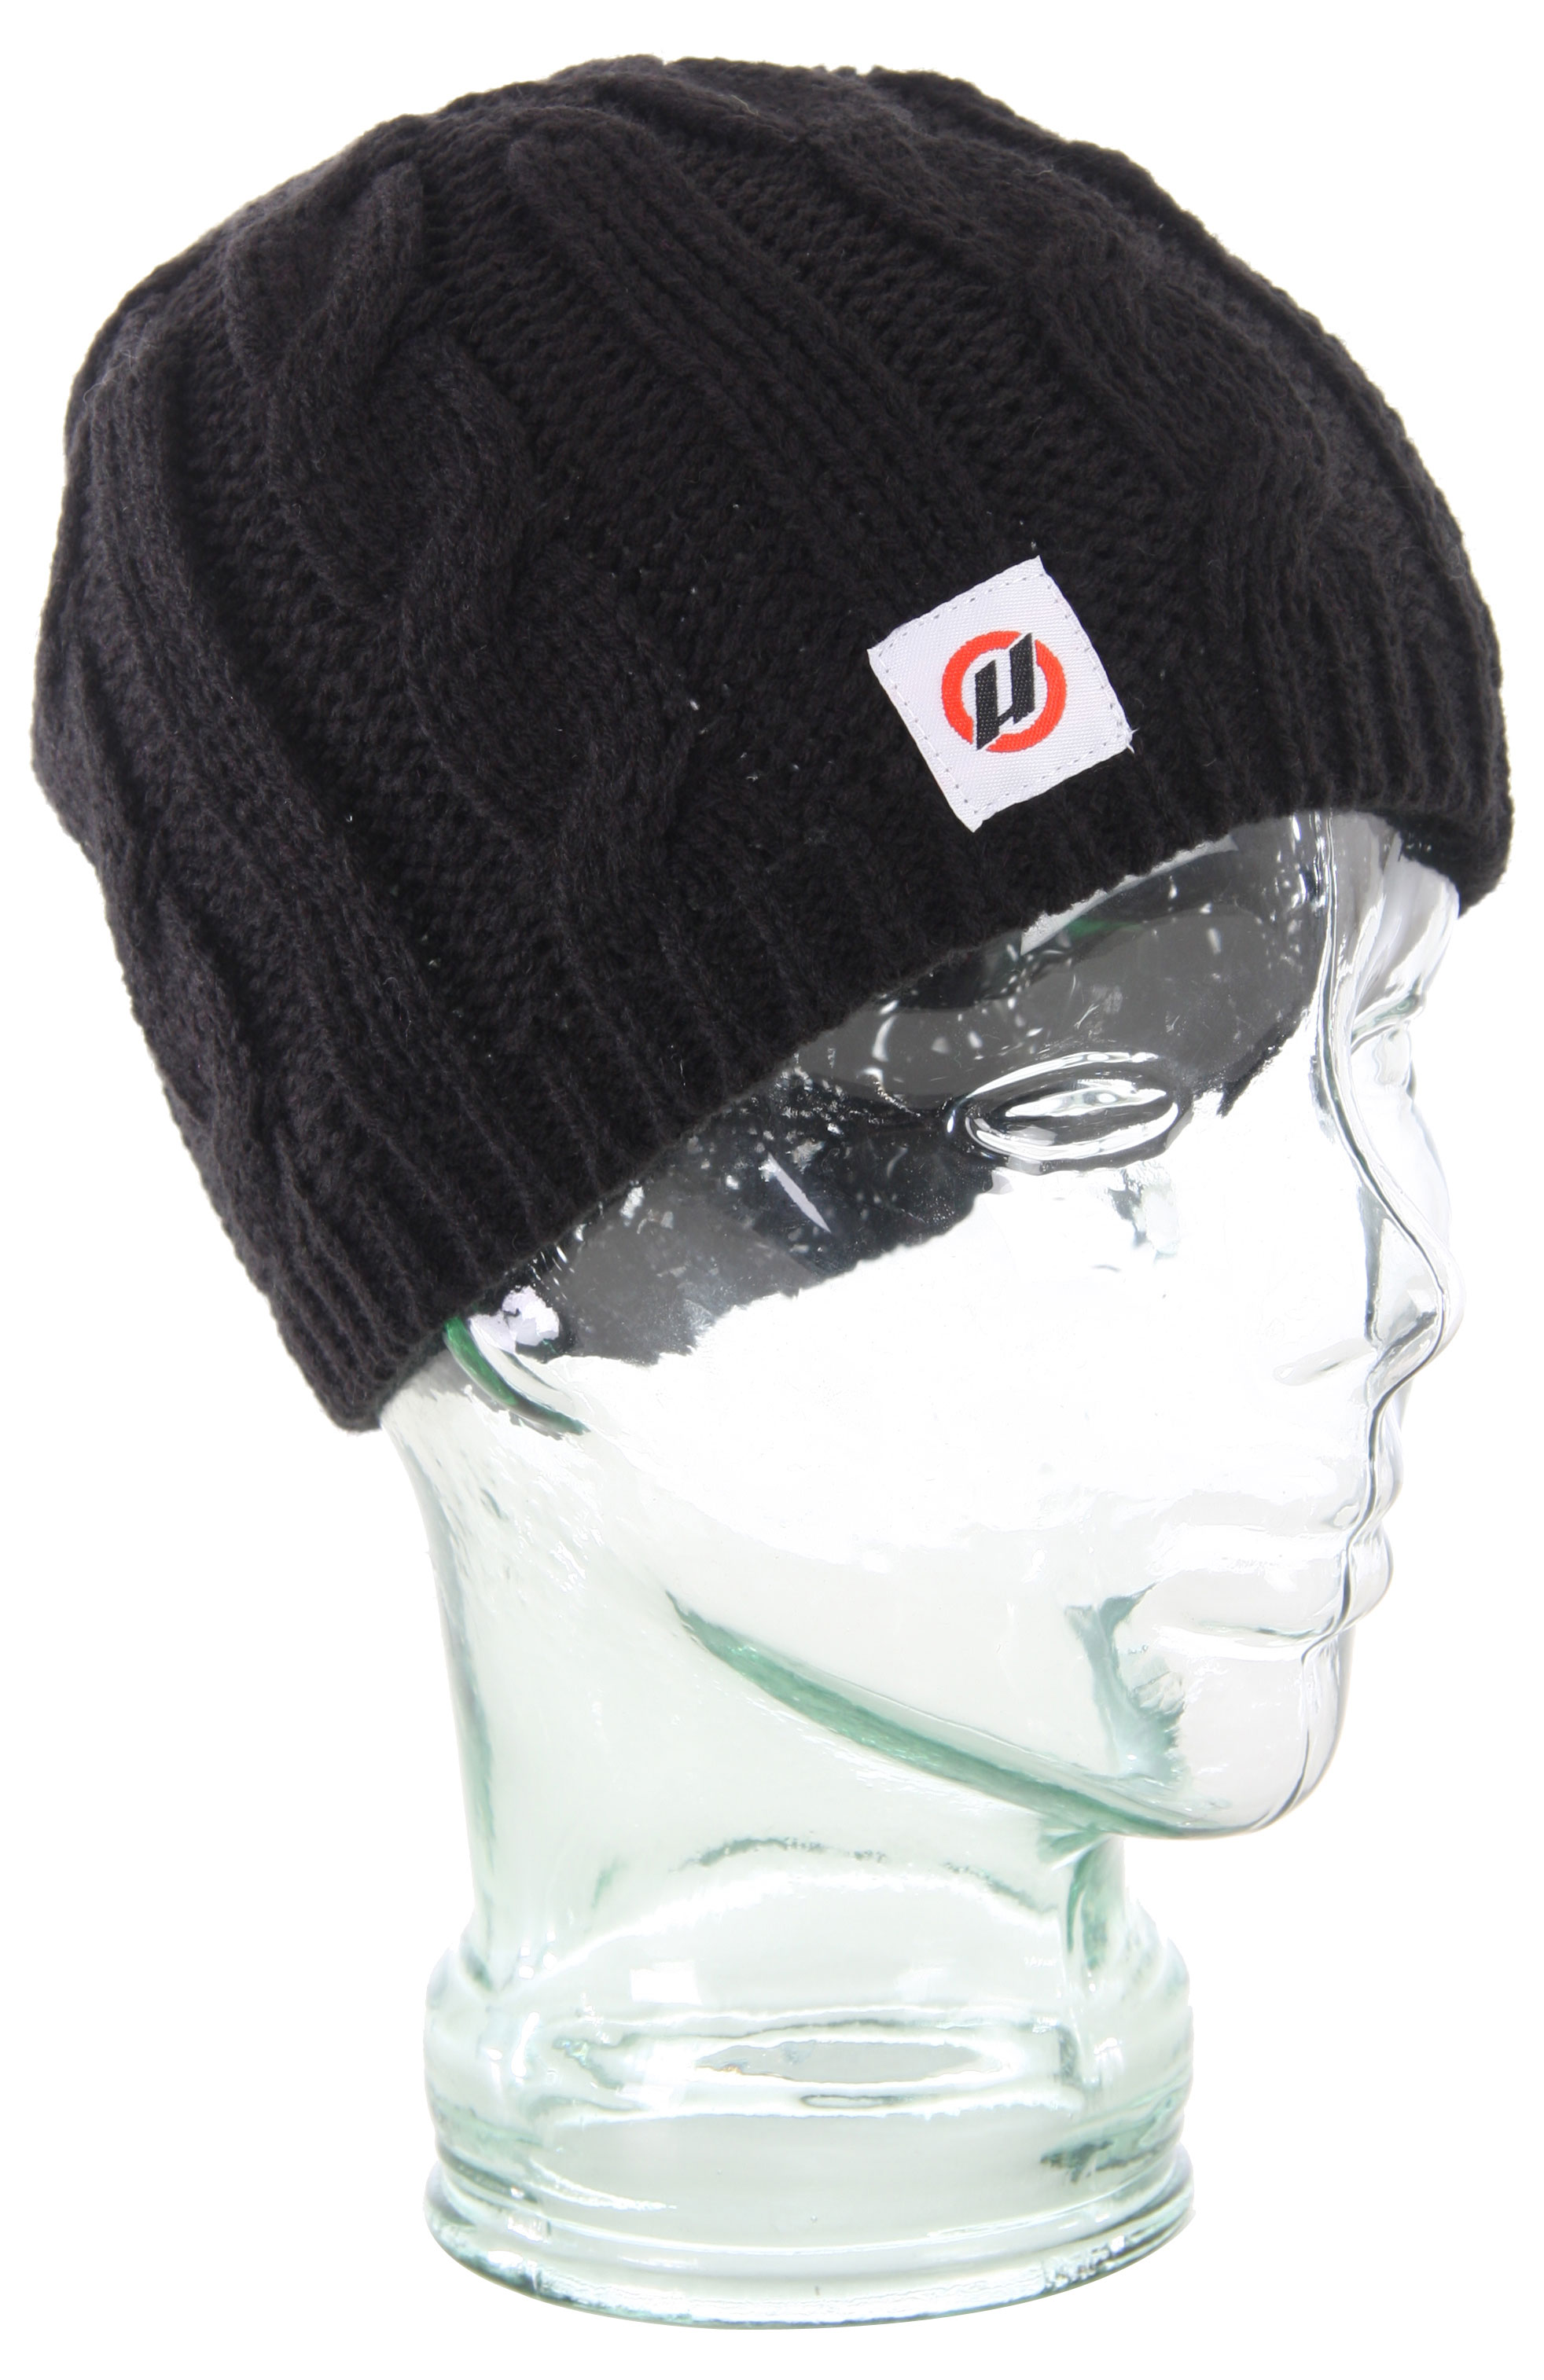 Key Features of the House Her Beanie: 100% Acrylic Cable knit beanie - $8.95